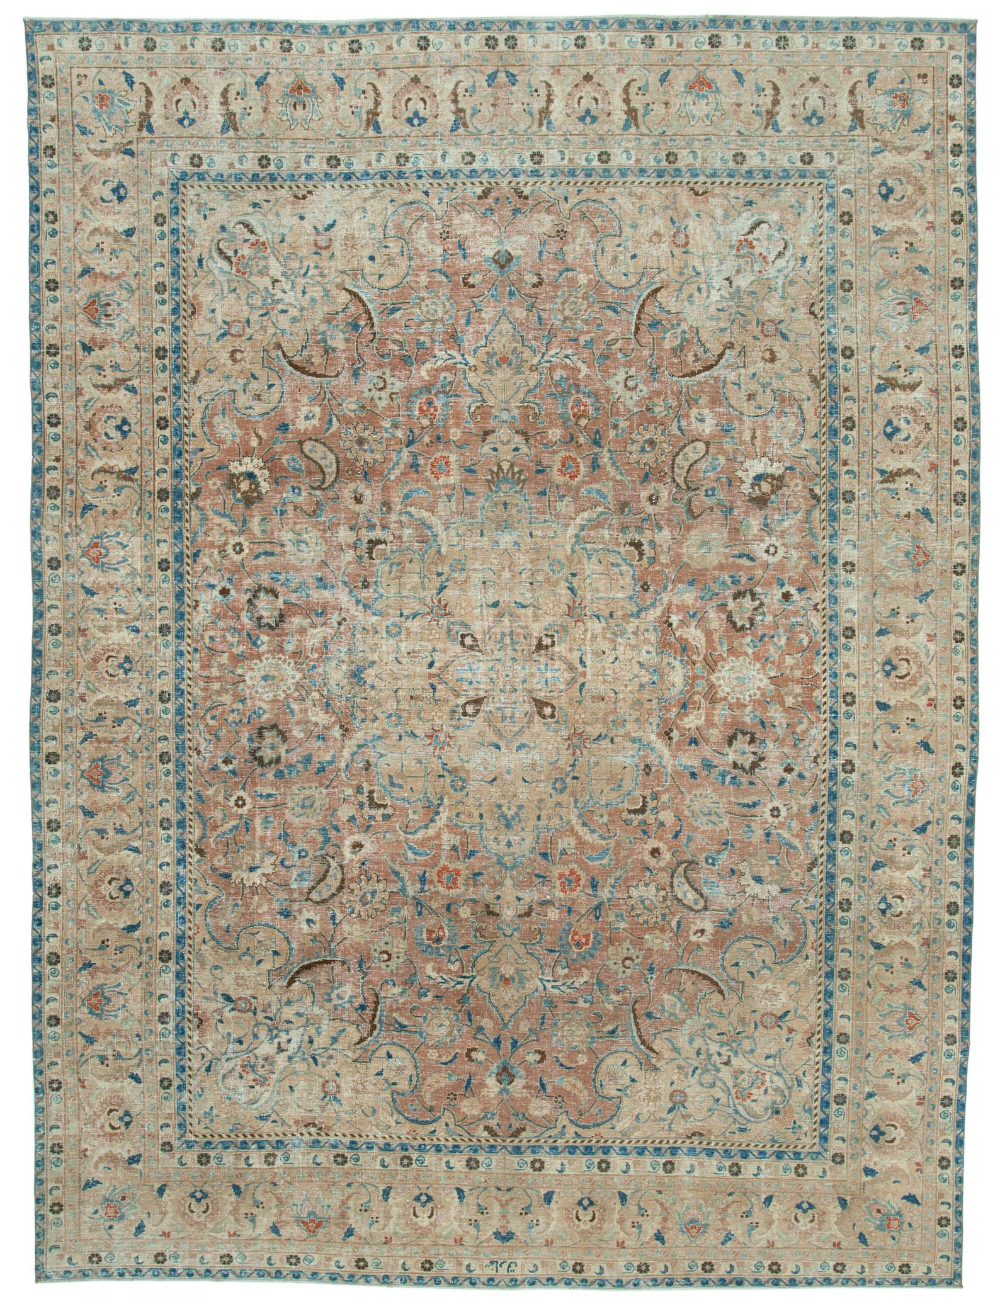 Visit Most Expensive Most Expensive Rug For Vintage Rugs Rug Cleaning Silk Rug Rugs